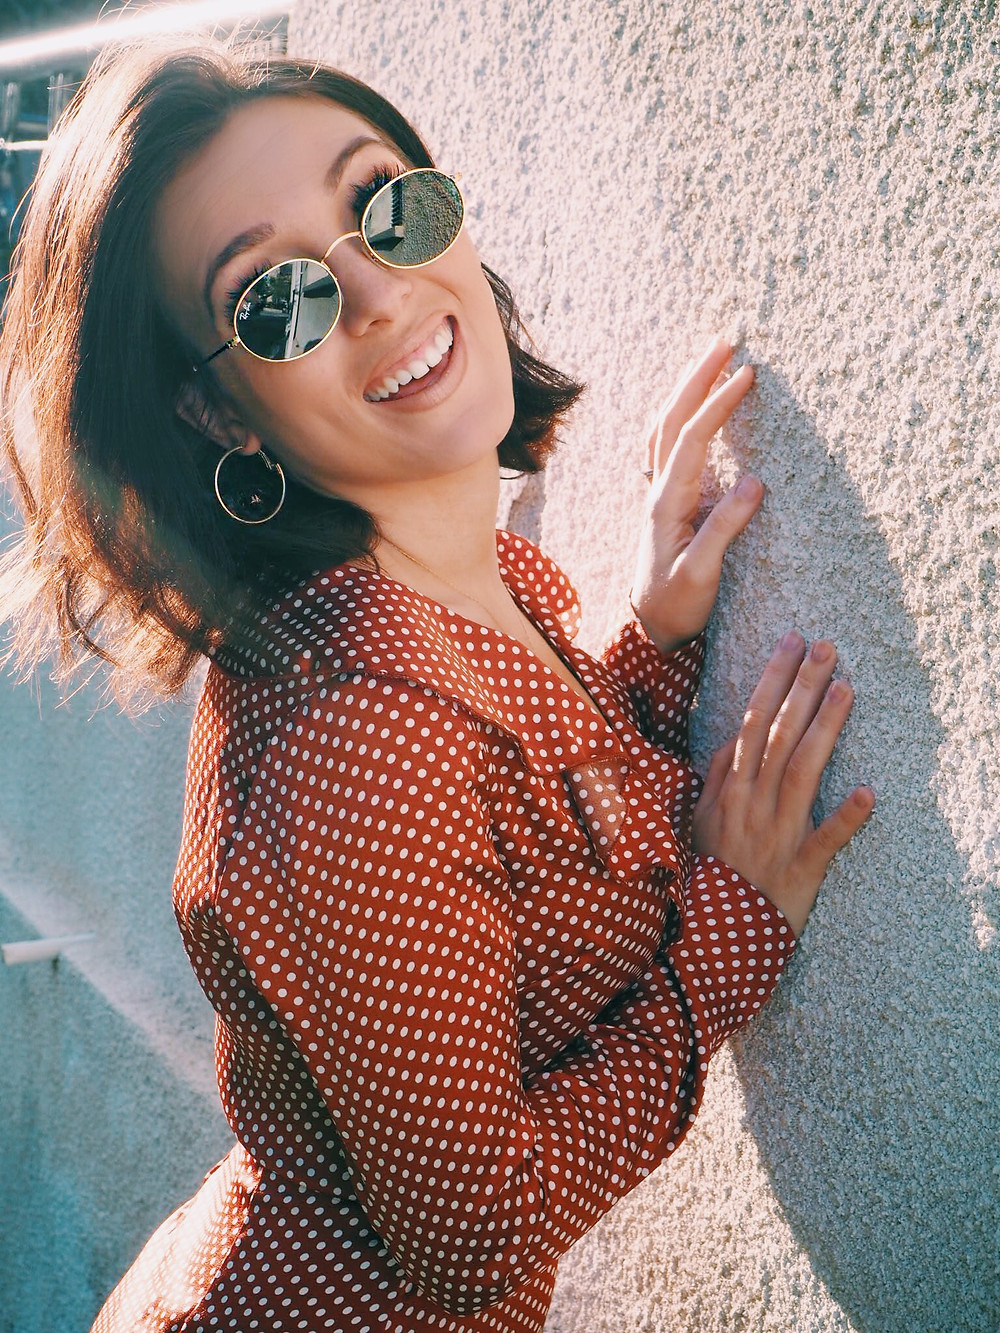 Ray ban ovals, Mini hoop earrings and a rust vintage polka dot dress